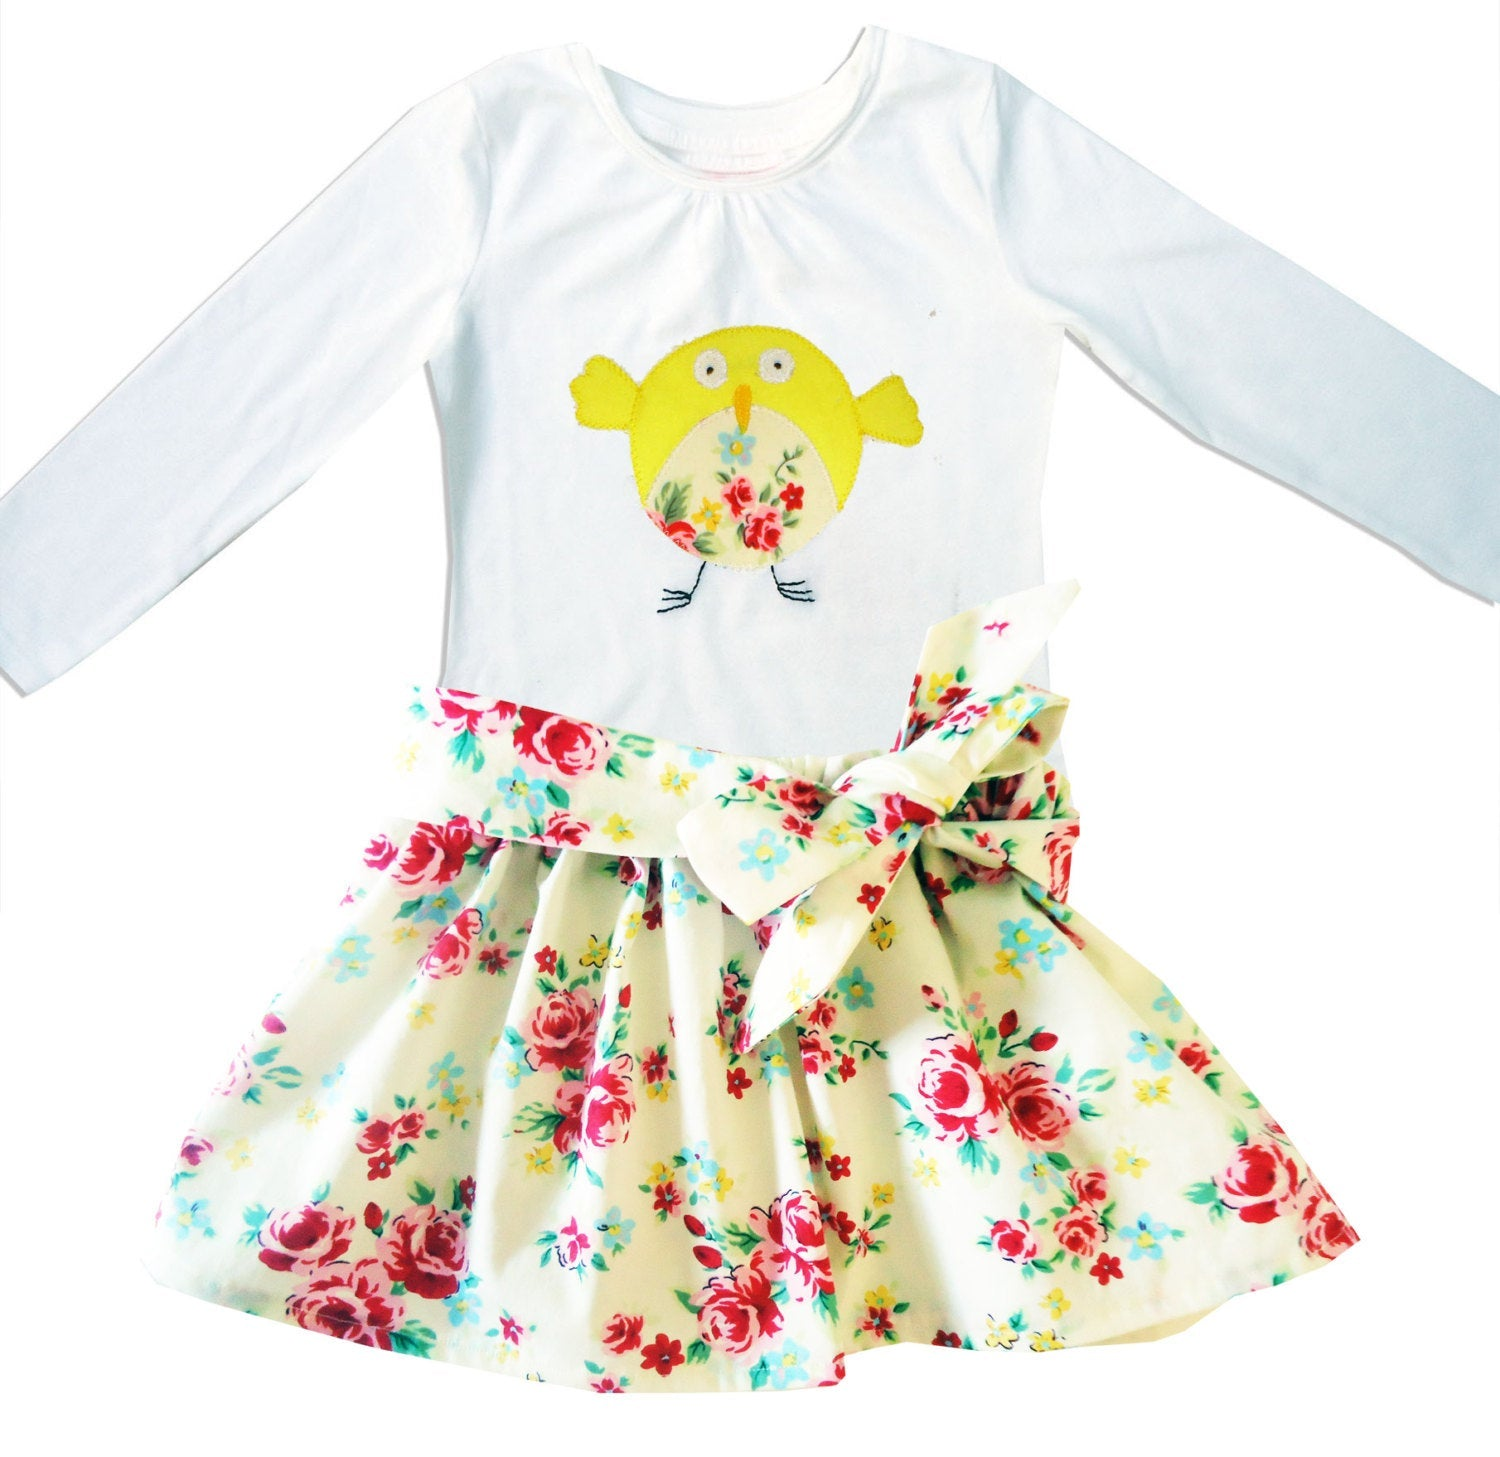 Girls Bird Skirt and T-shirt Outfit, Easter Clothing, Toddler Clothes, Gift for Girls